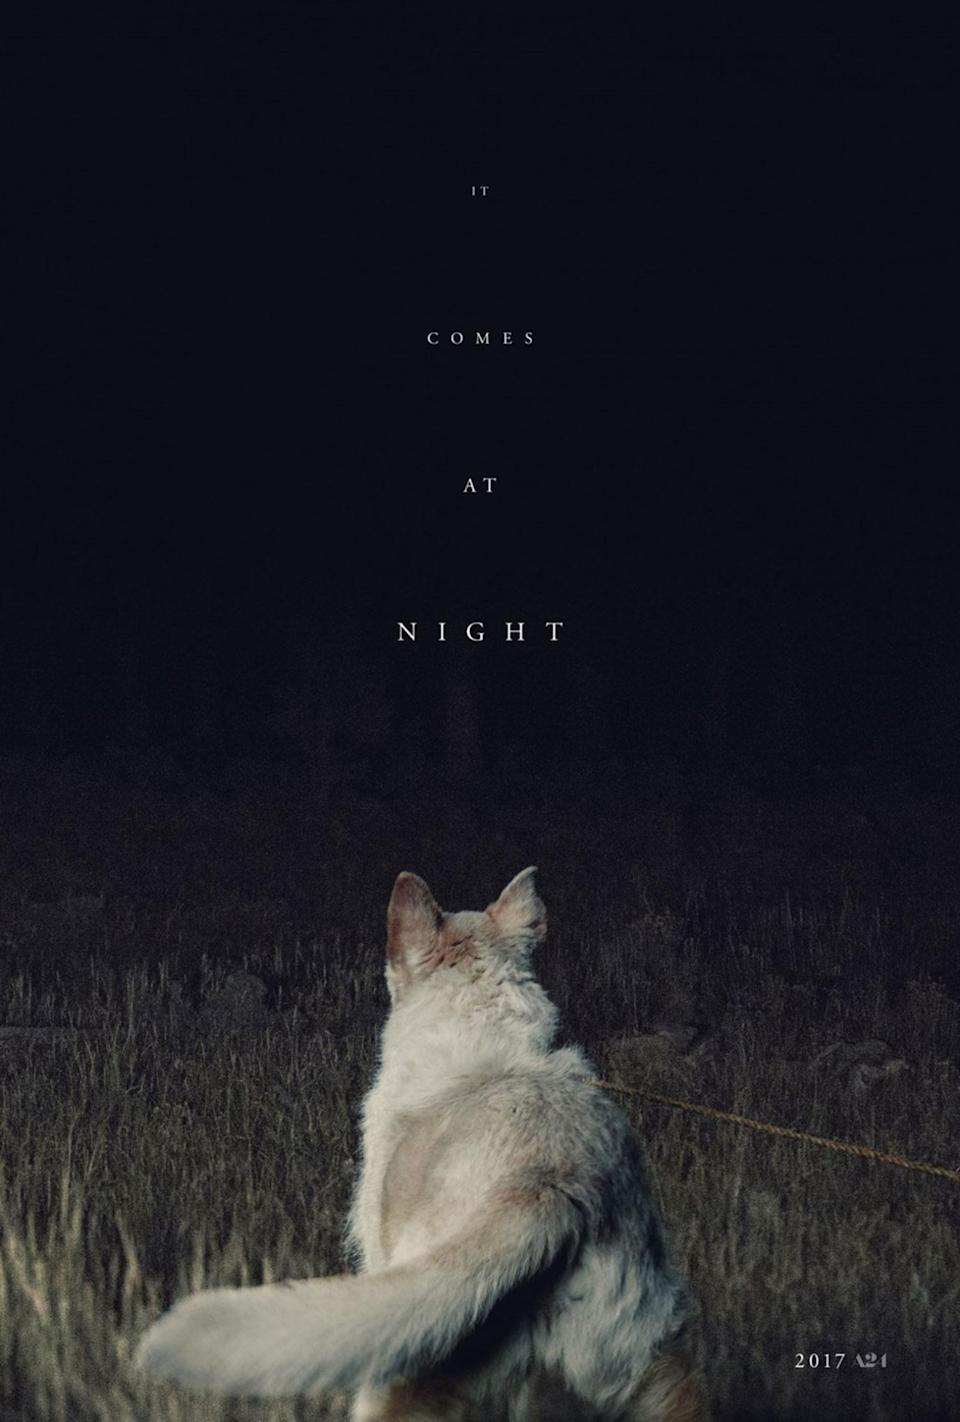 <p>What comes at night, exactly? That's all part of the appeal of this tremendously sparse horror one-sheet – whatever is lurking in that night certainly has the dog spooked, therefore you should probably be on edge too. Extra points too for the simple title font and the increasingly unreadable type – if the poster is drawing you in closer, it's doing its job. </p>